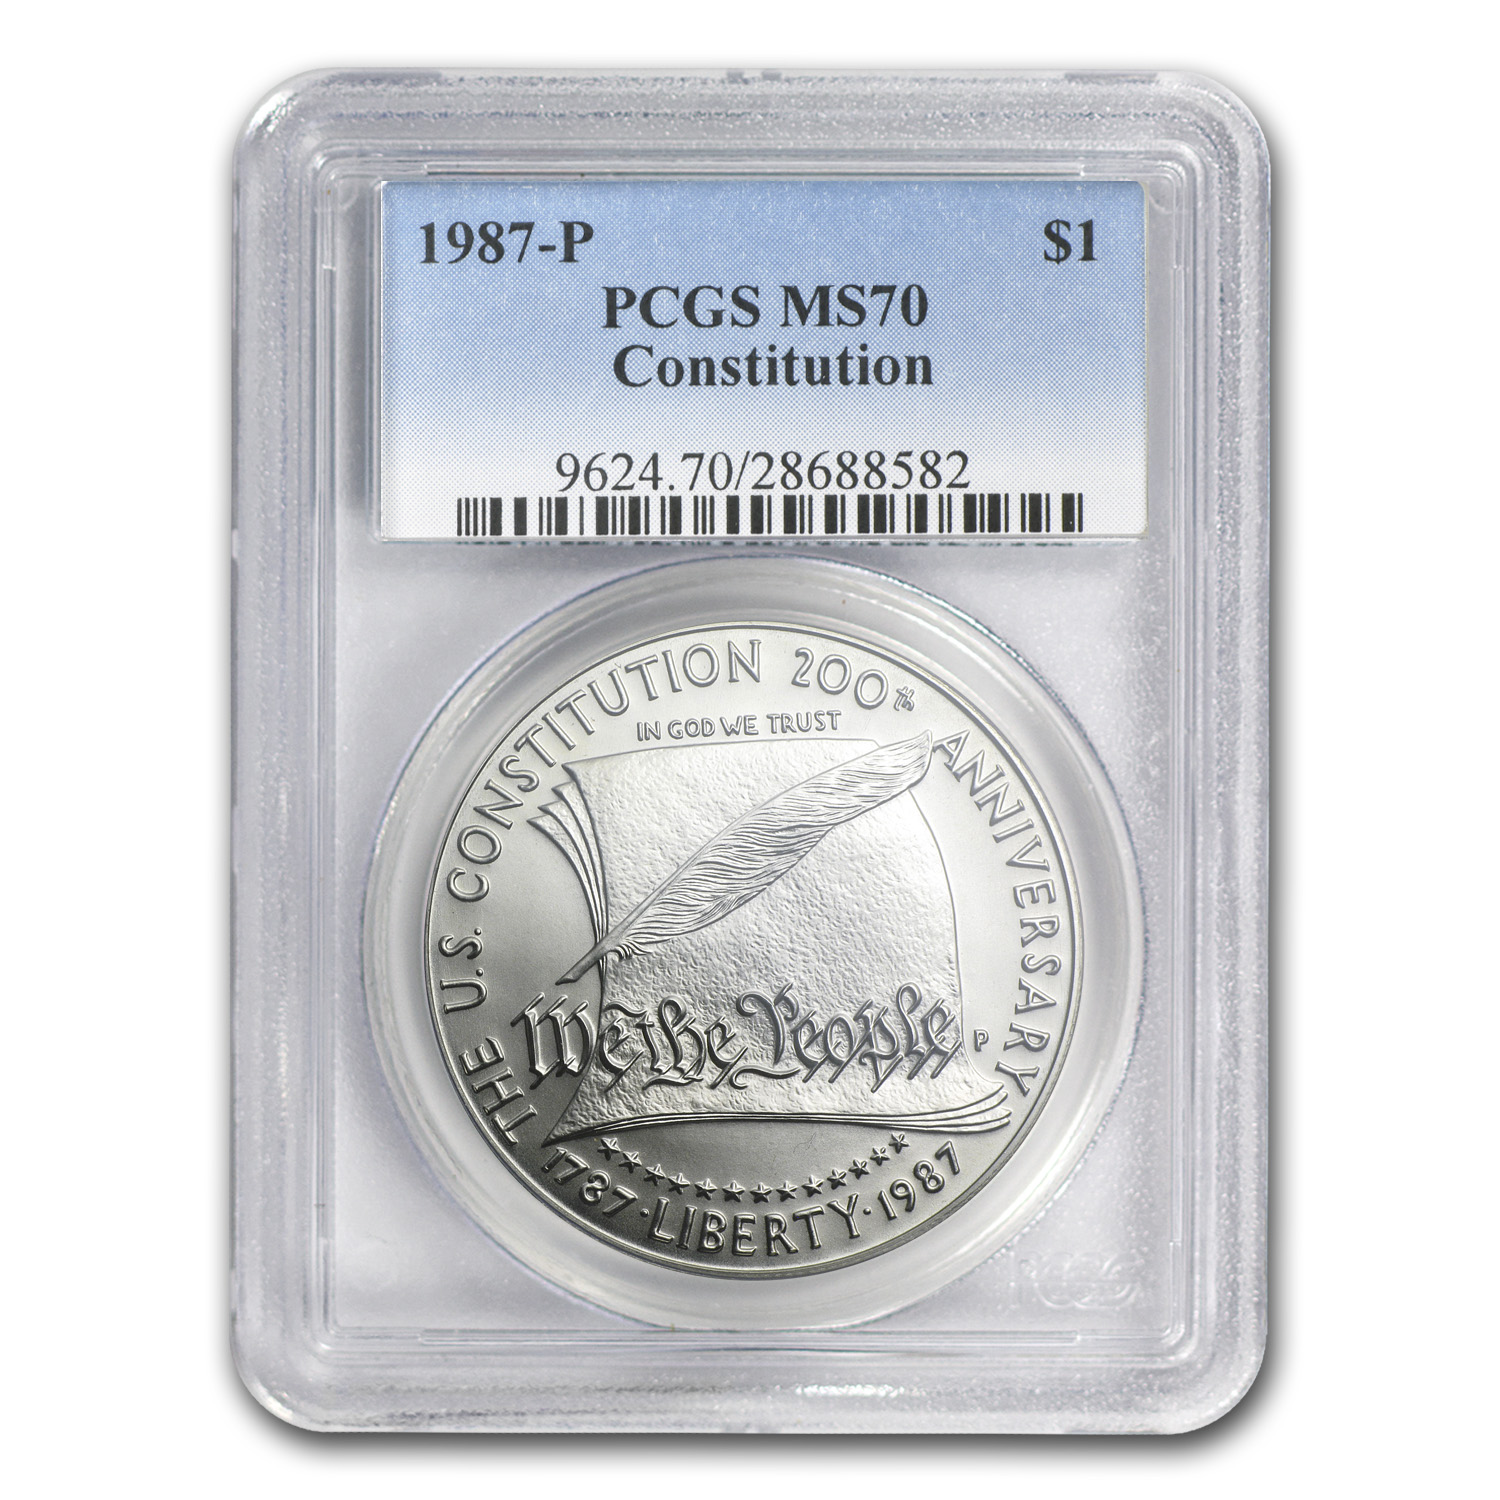 1987-P Constitution $1 Silver Commemorative MS-70 PCGS